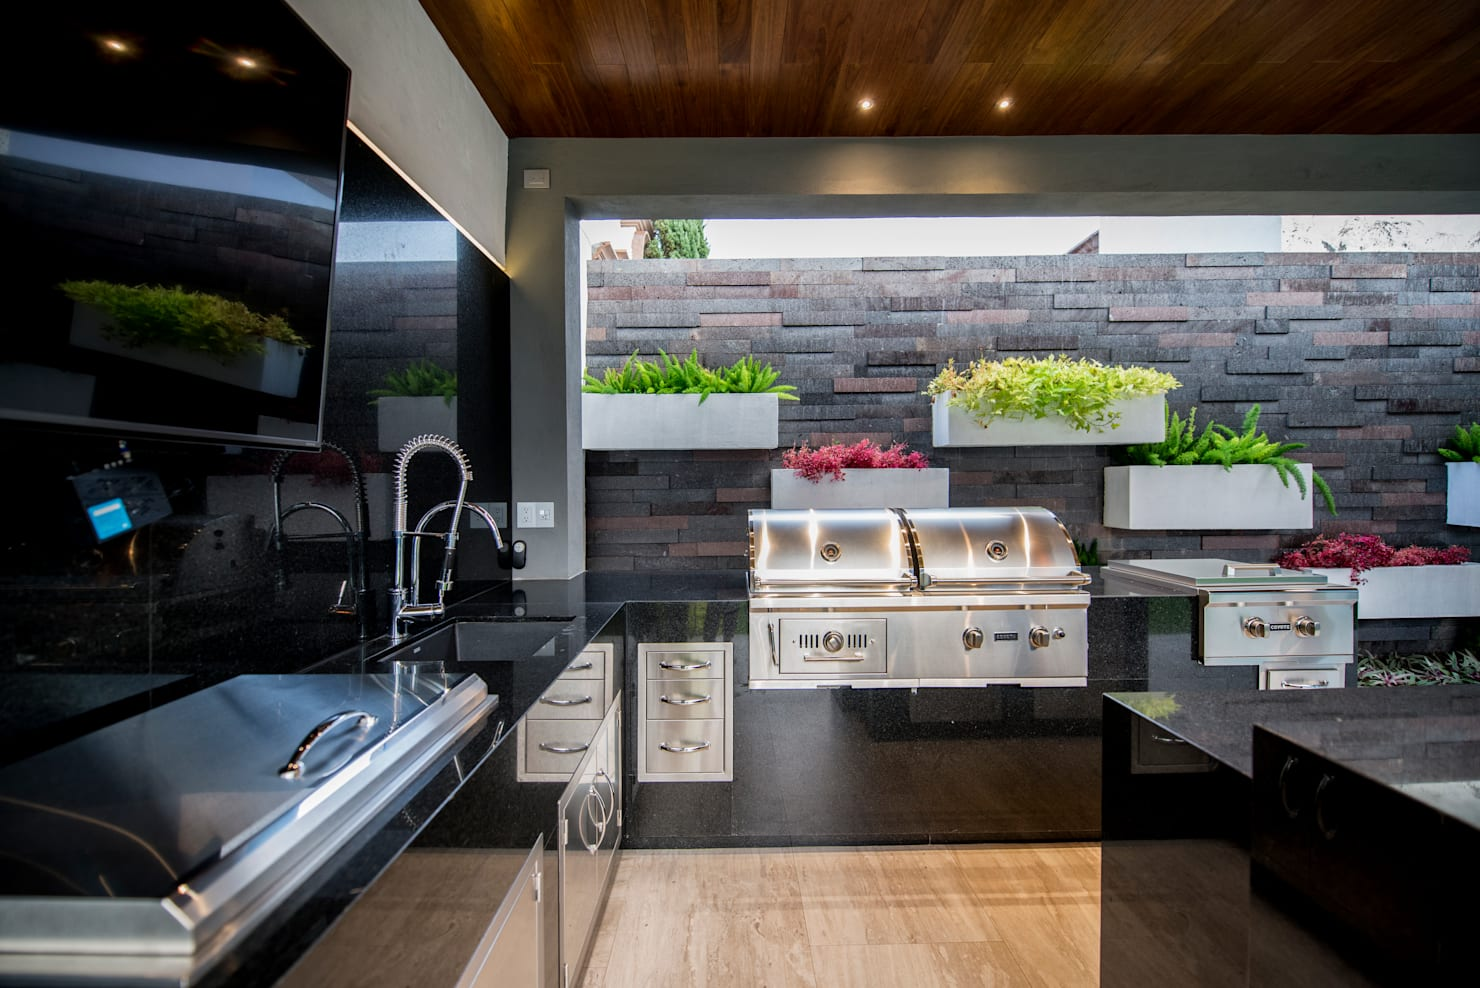 Garden ideas: 8 outdoor kitchens we know you're going to love! (in full detail)